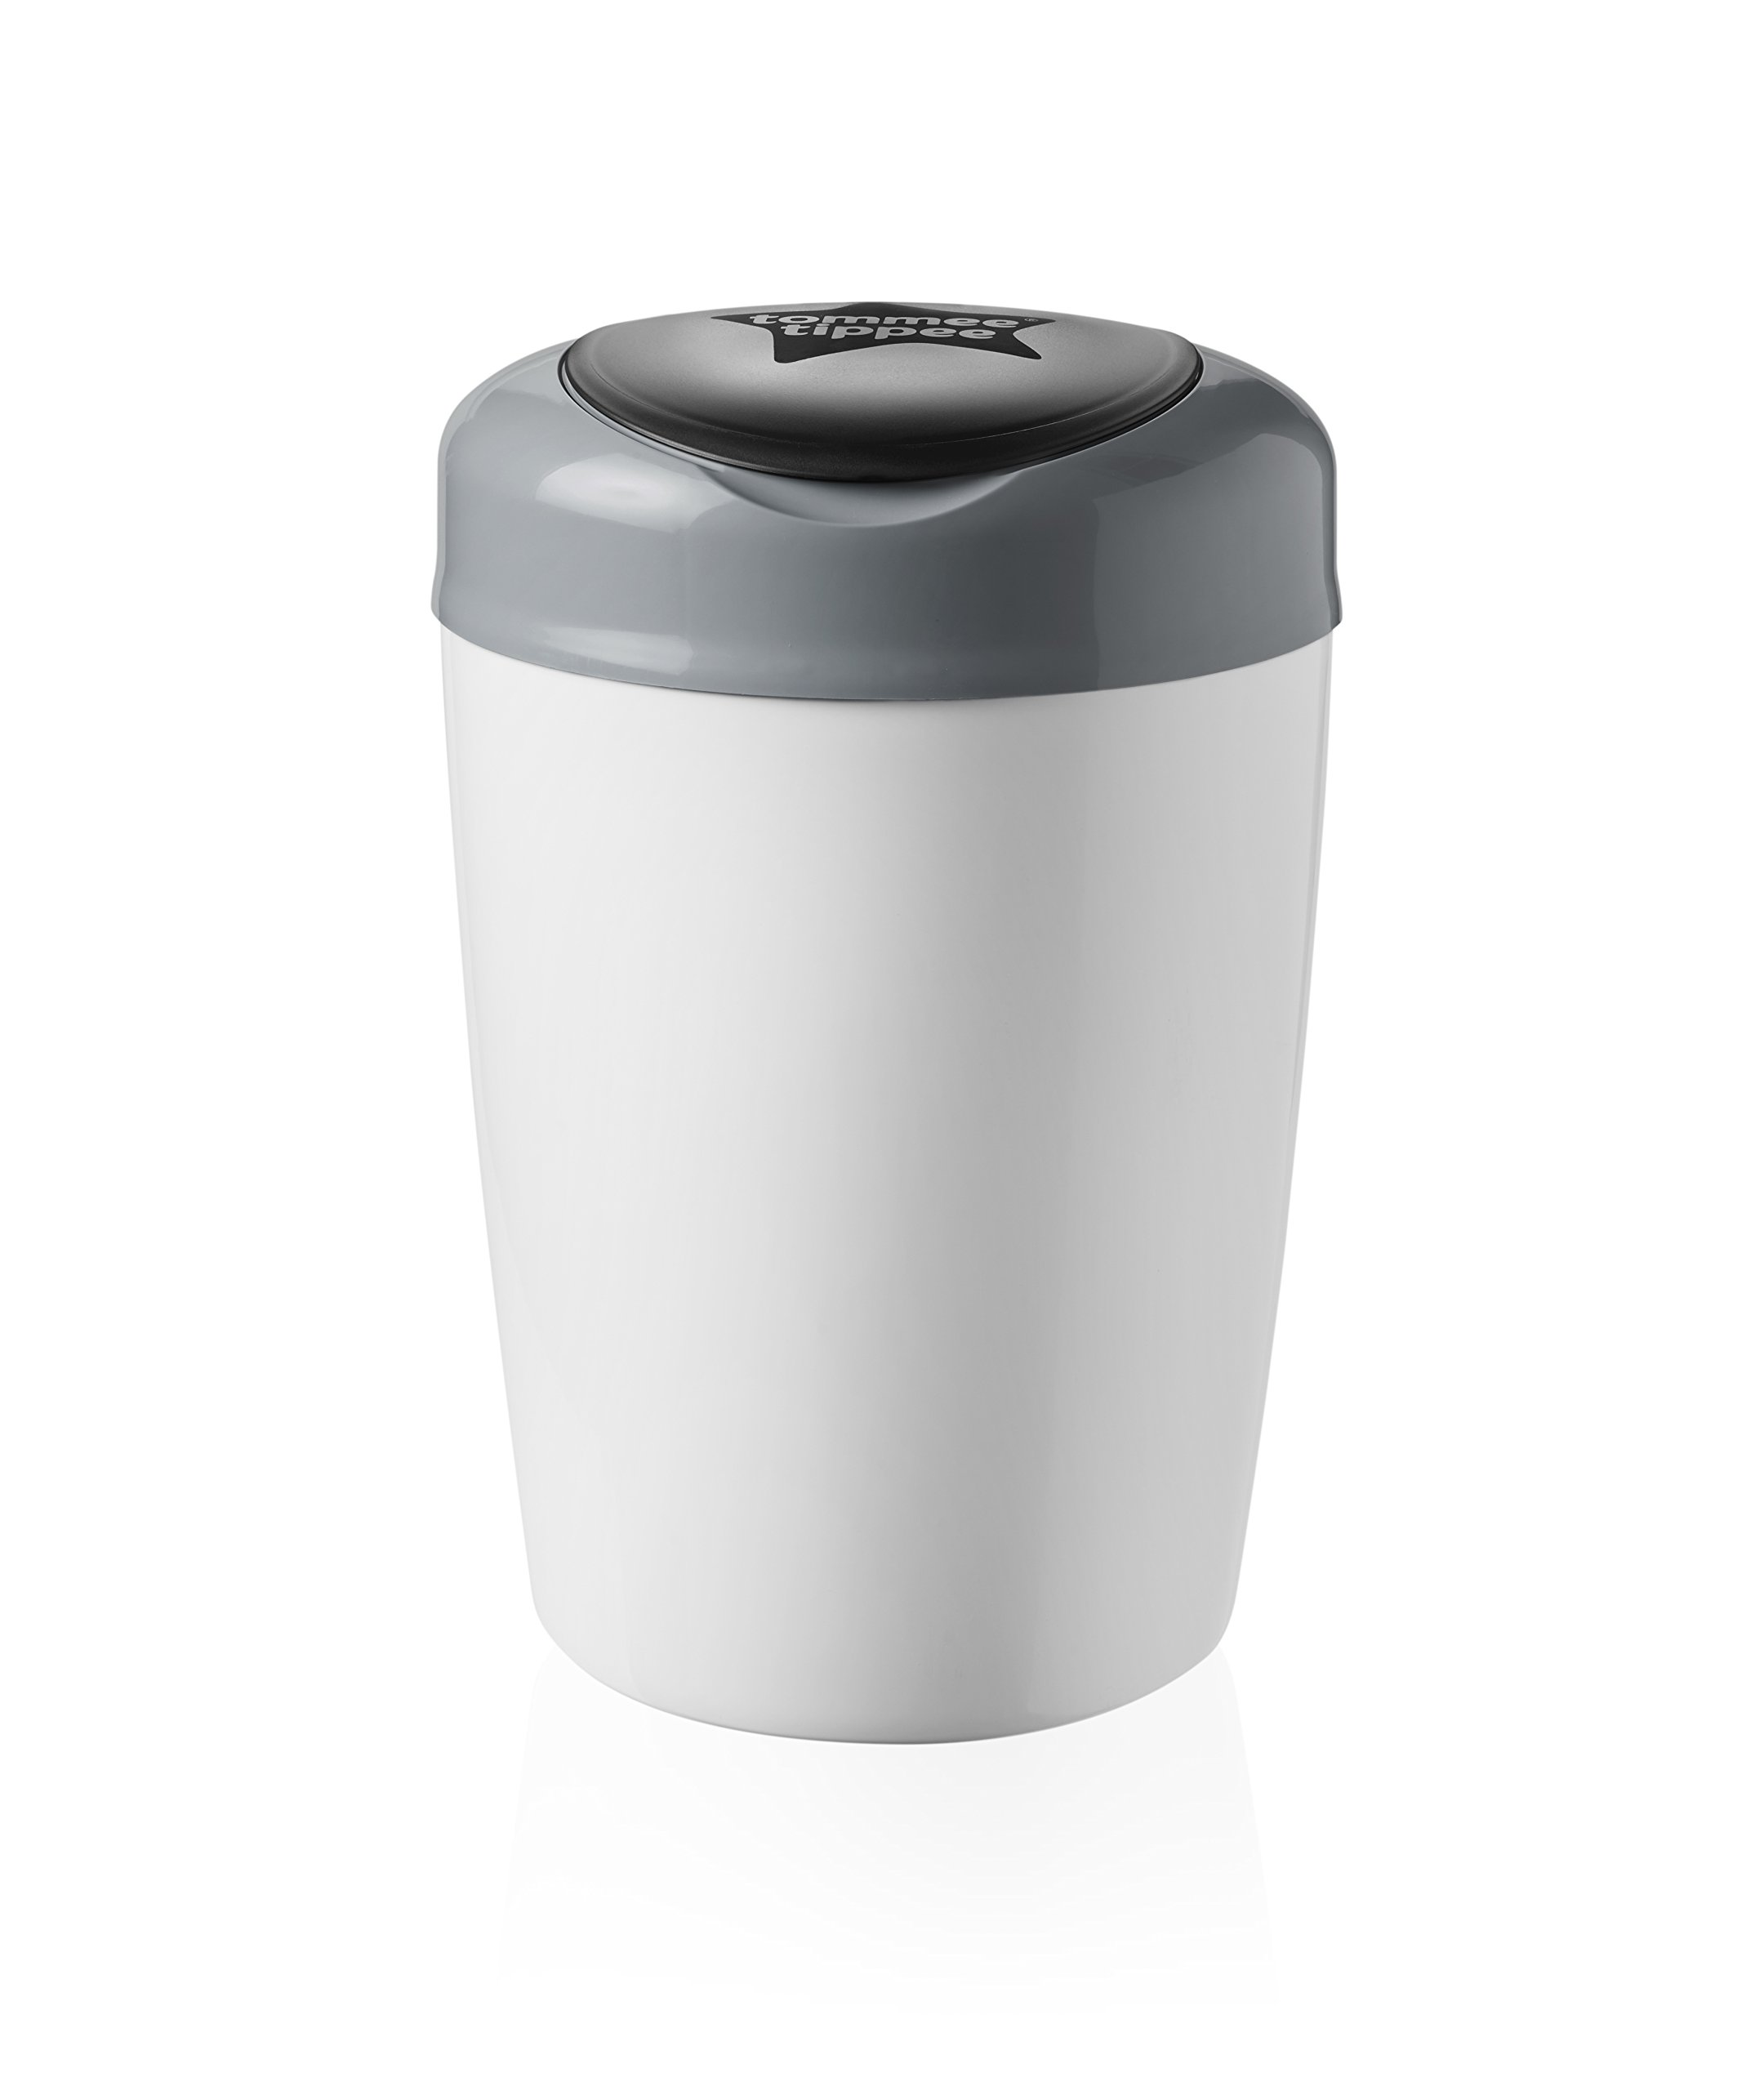 Tommee Tippee Simplee Sangenic, Contenedor de Pañales, Gris product image